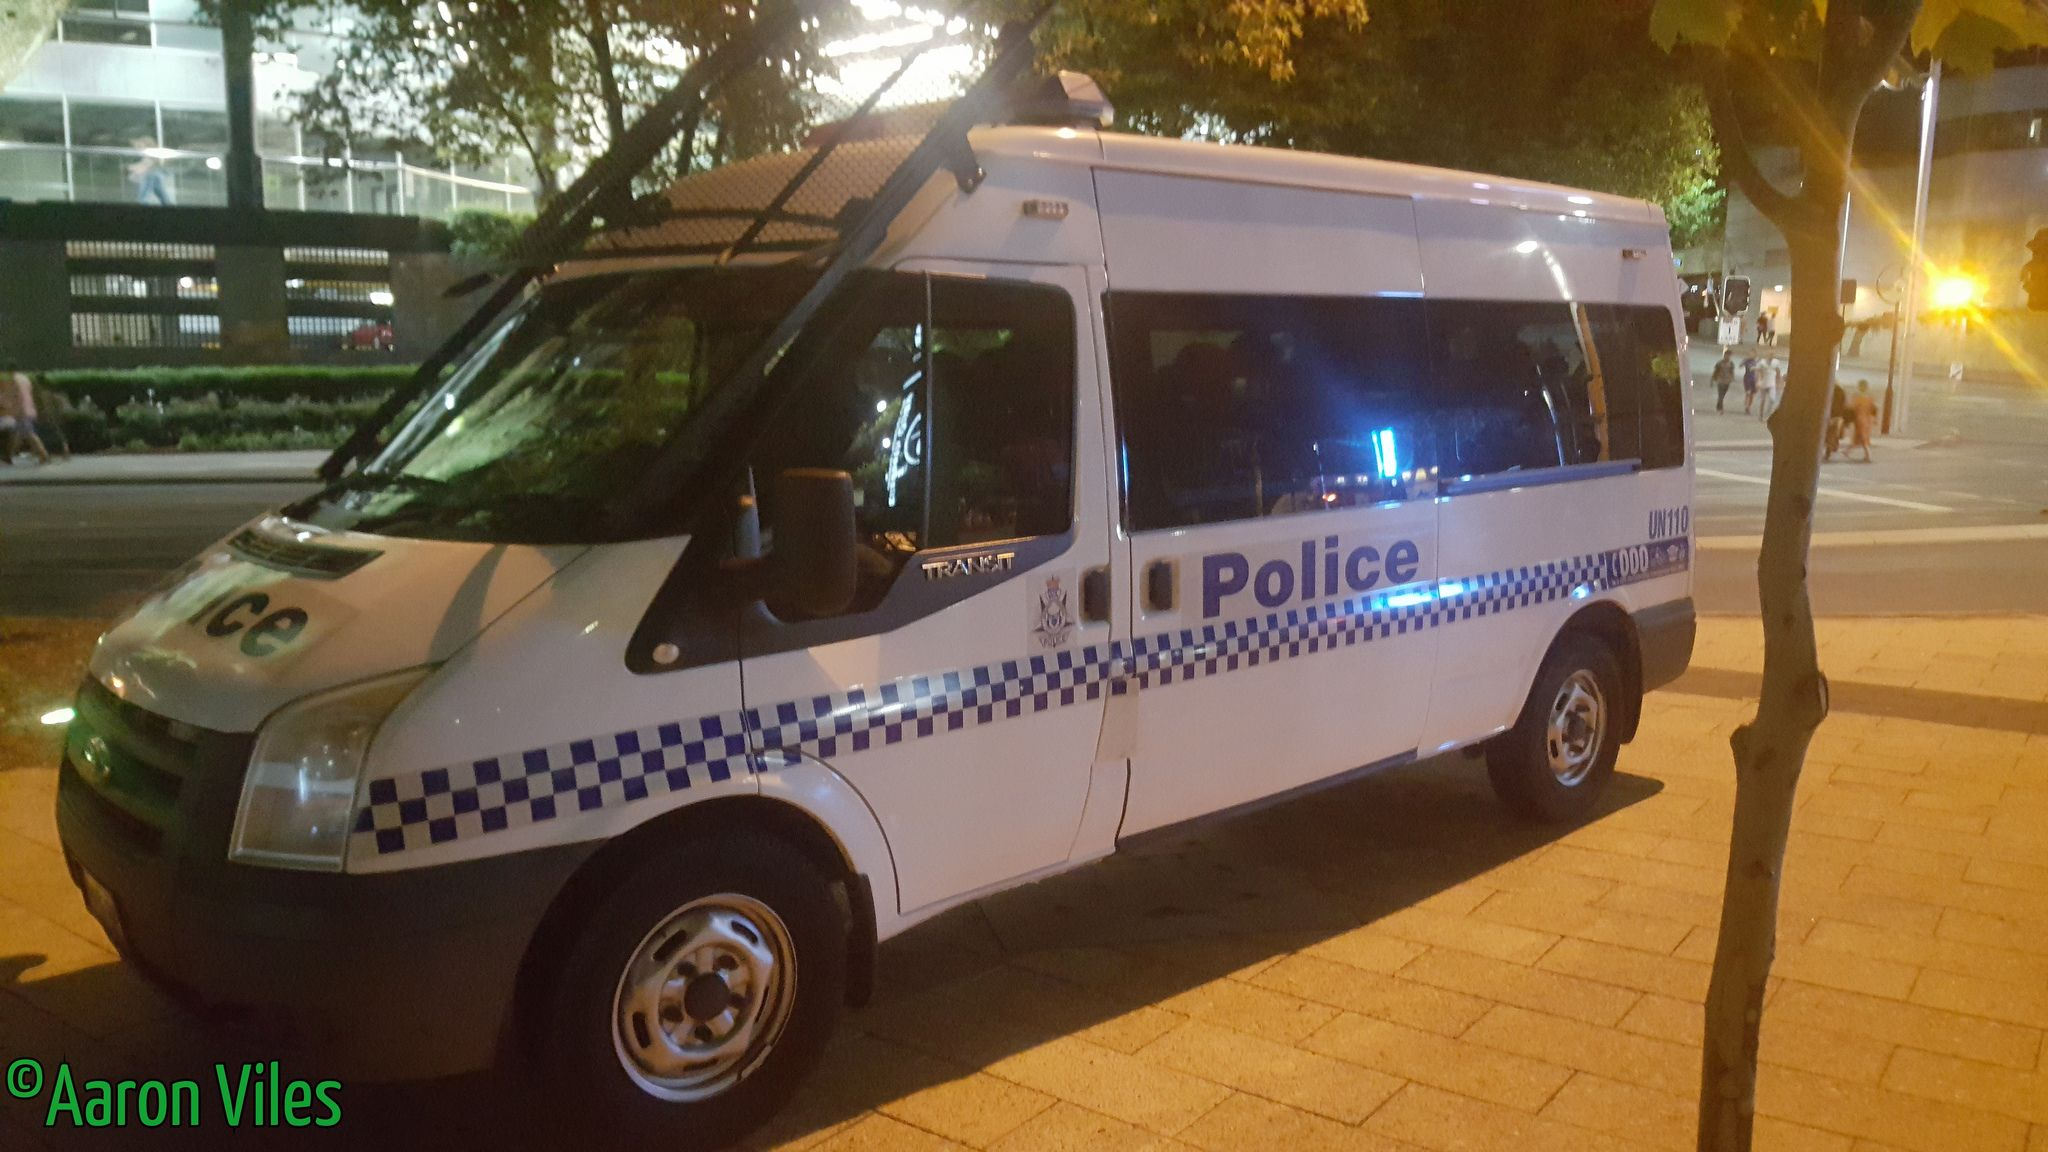 Western Australia Police (With images) Western australia